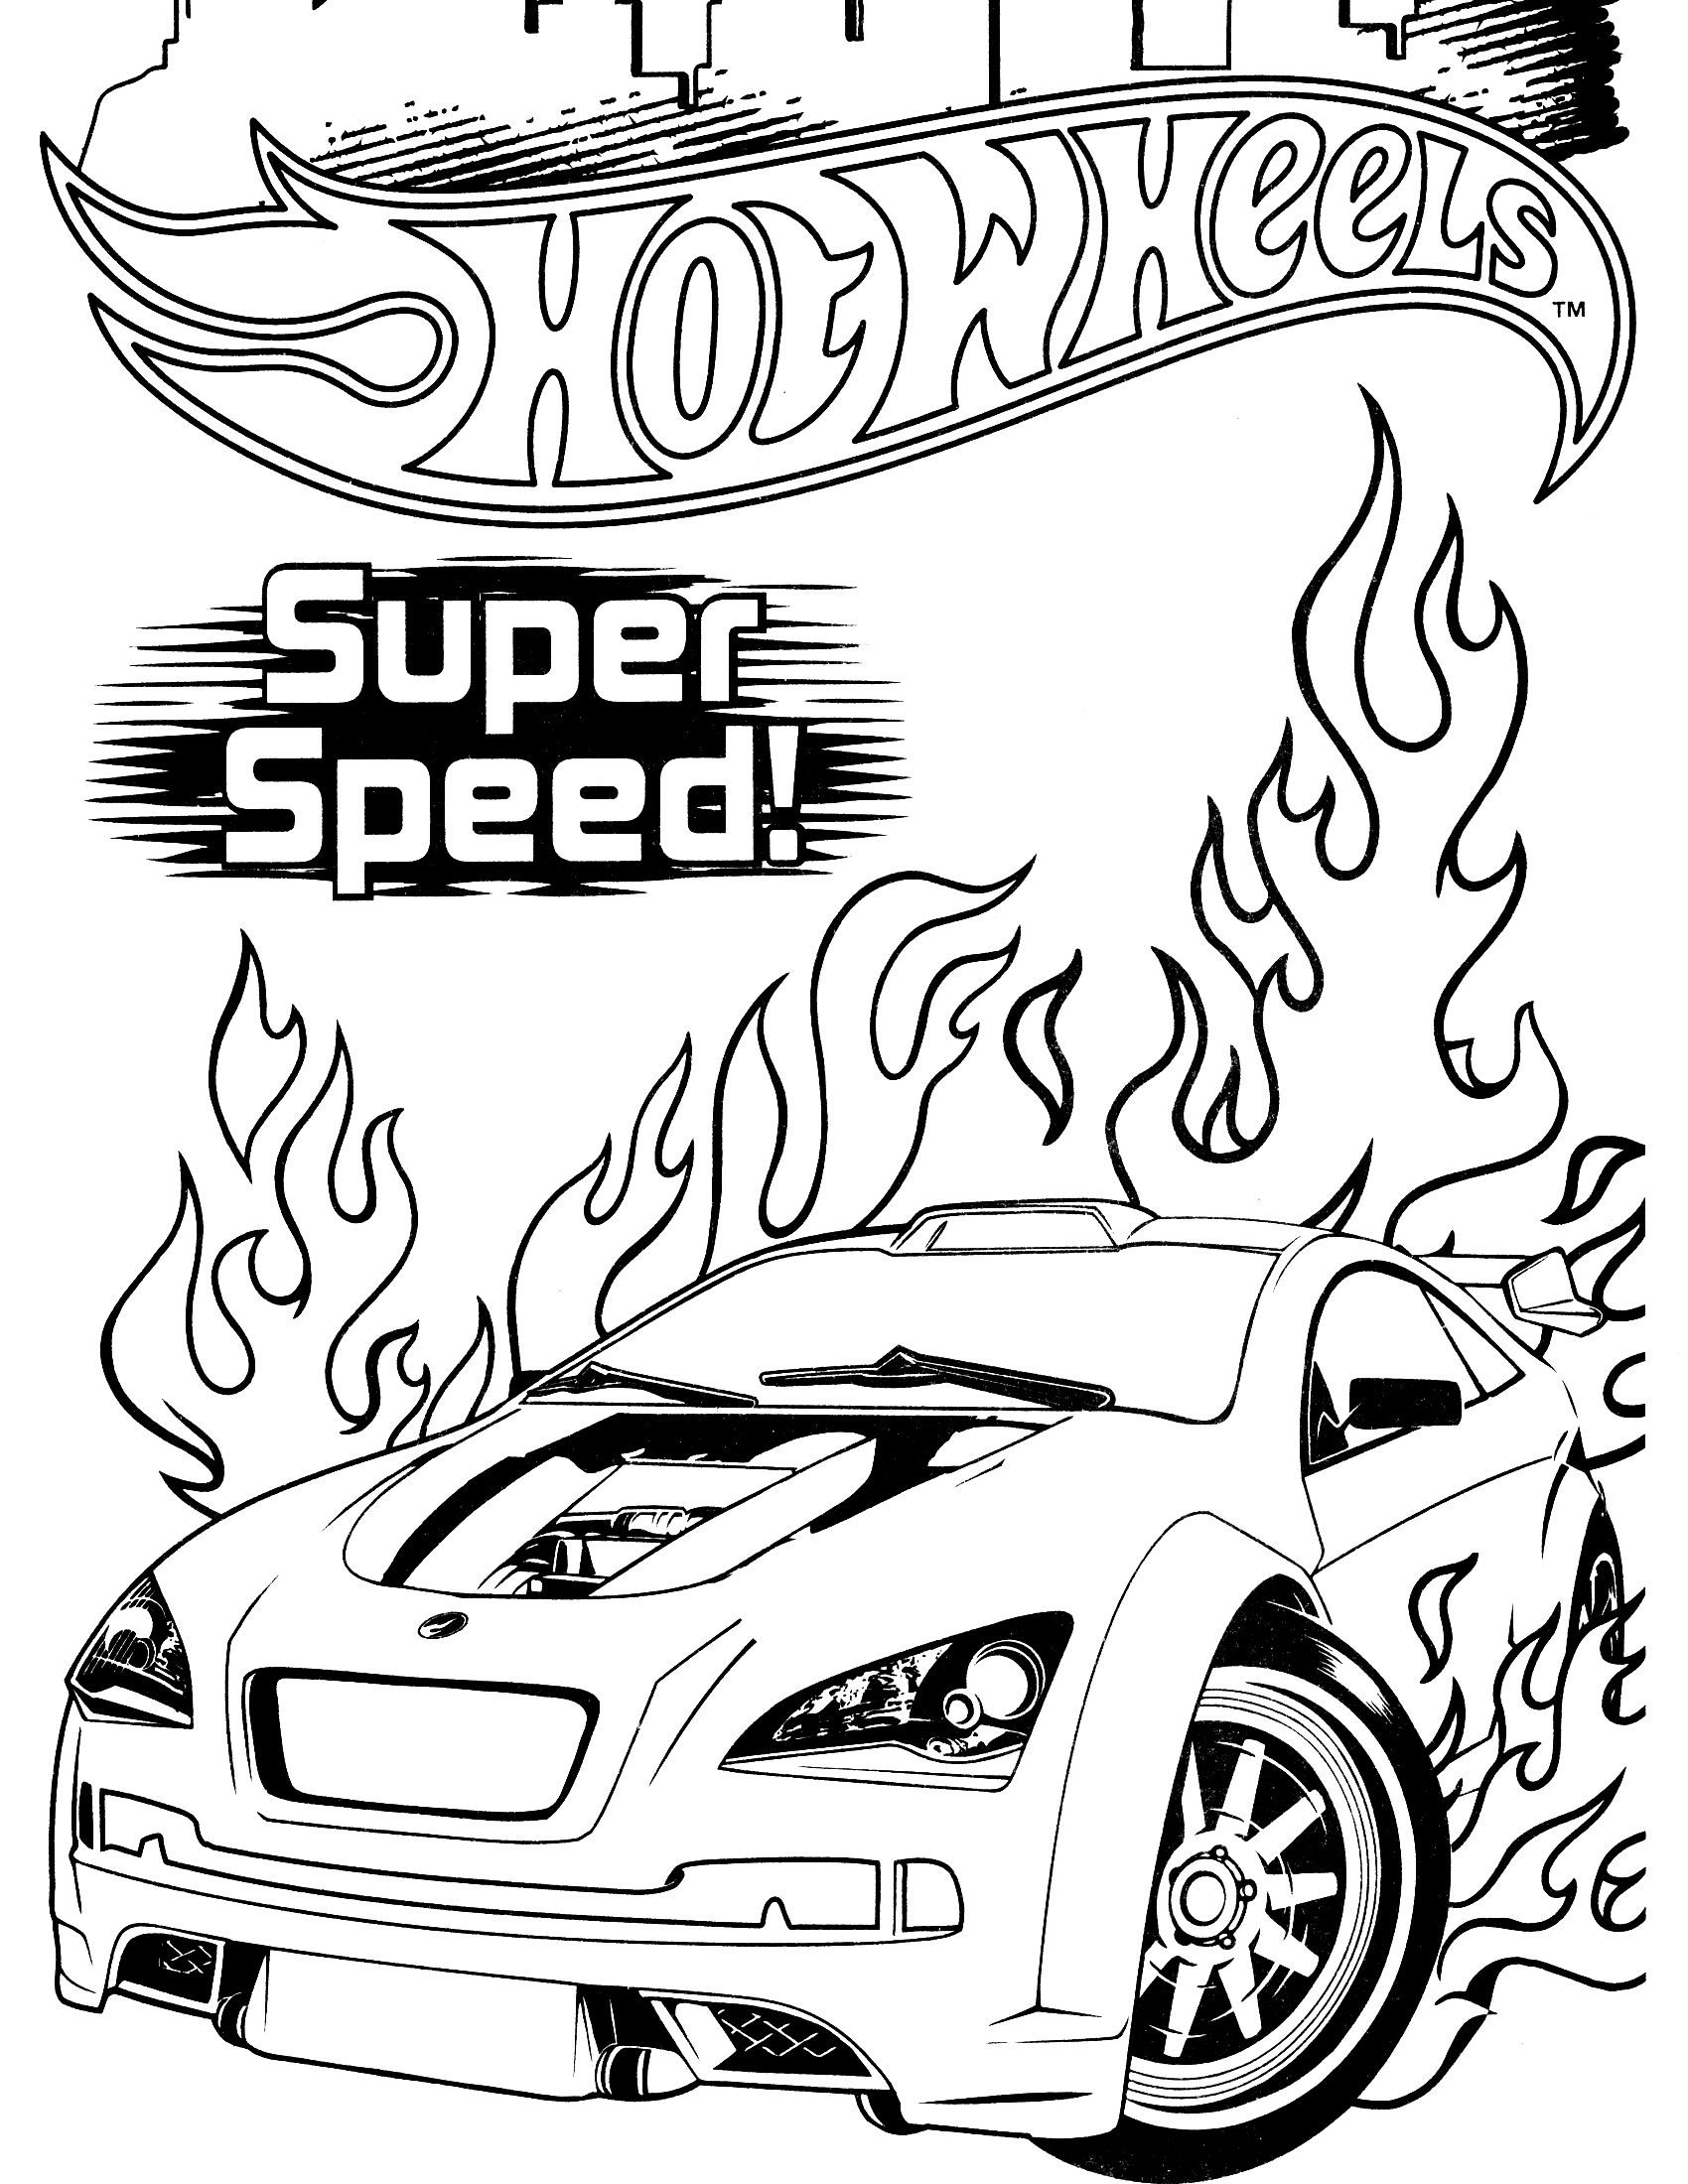 hotwheels coloring pages free printable hot wheels coloring pages for kids coloring hotwheels pages